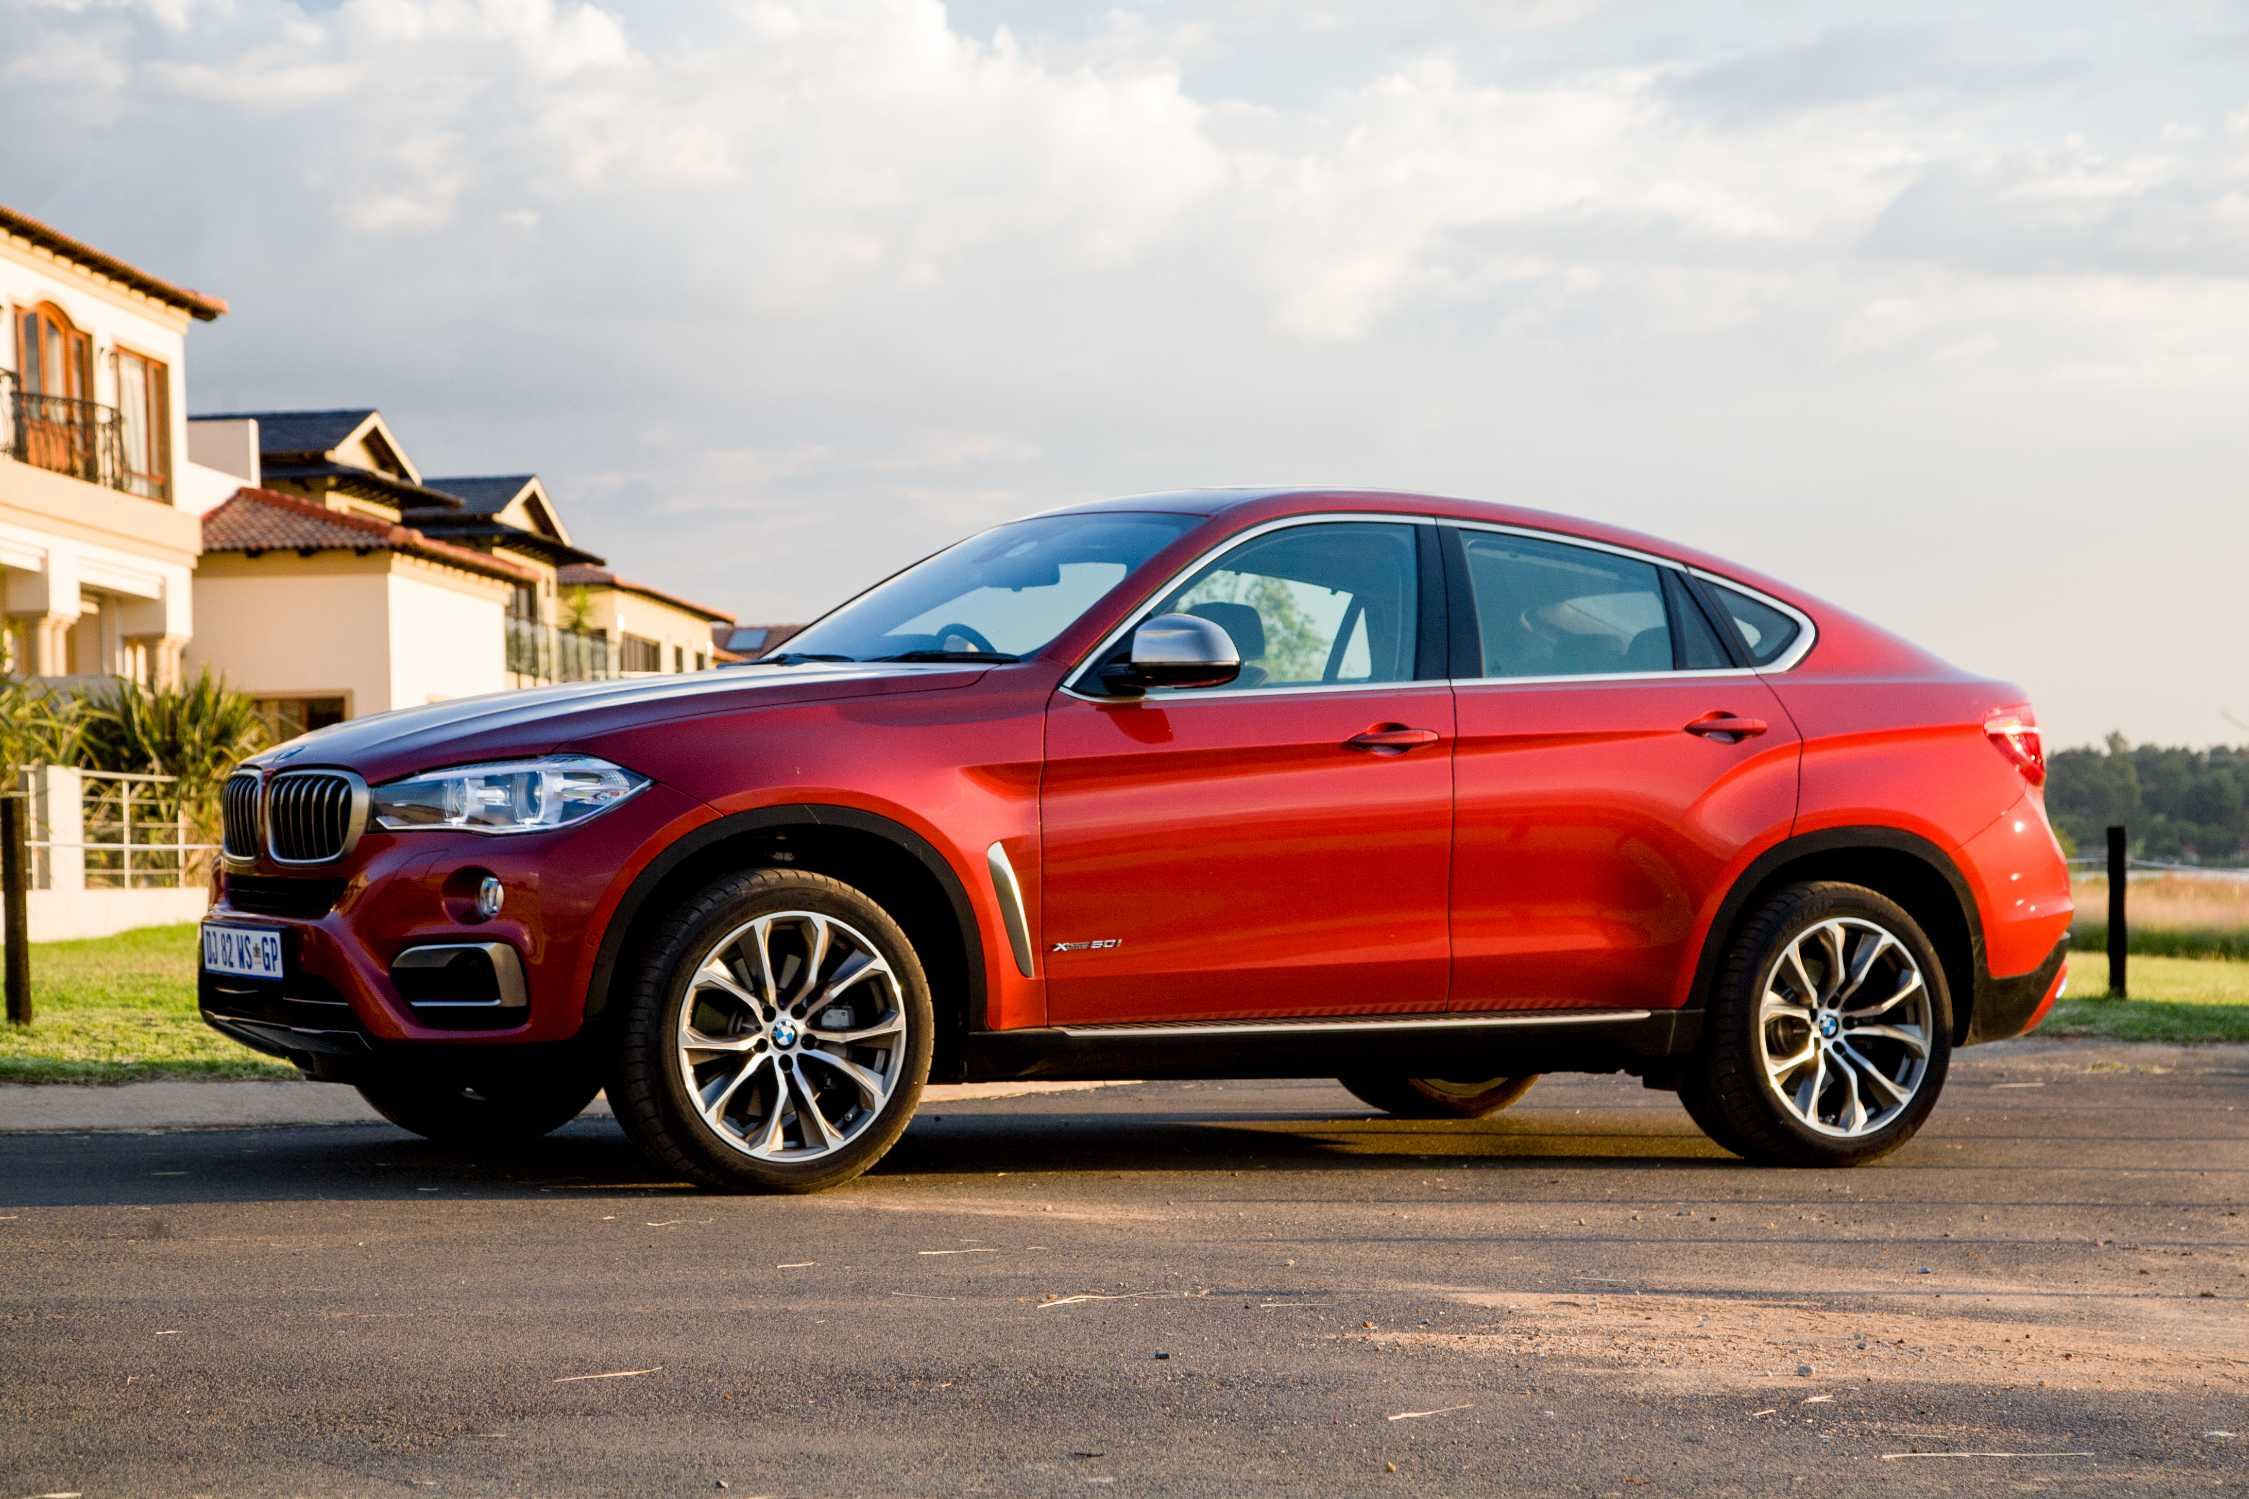 The New Bmw X6 Now On Sale In South Africa 02 2015